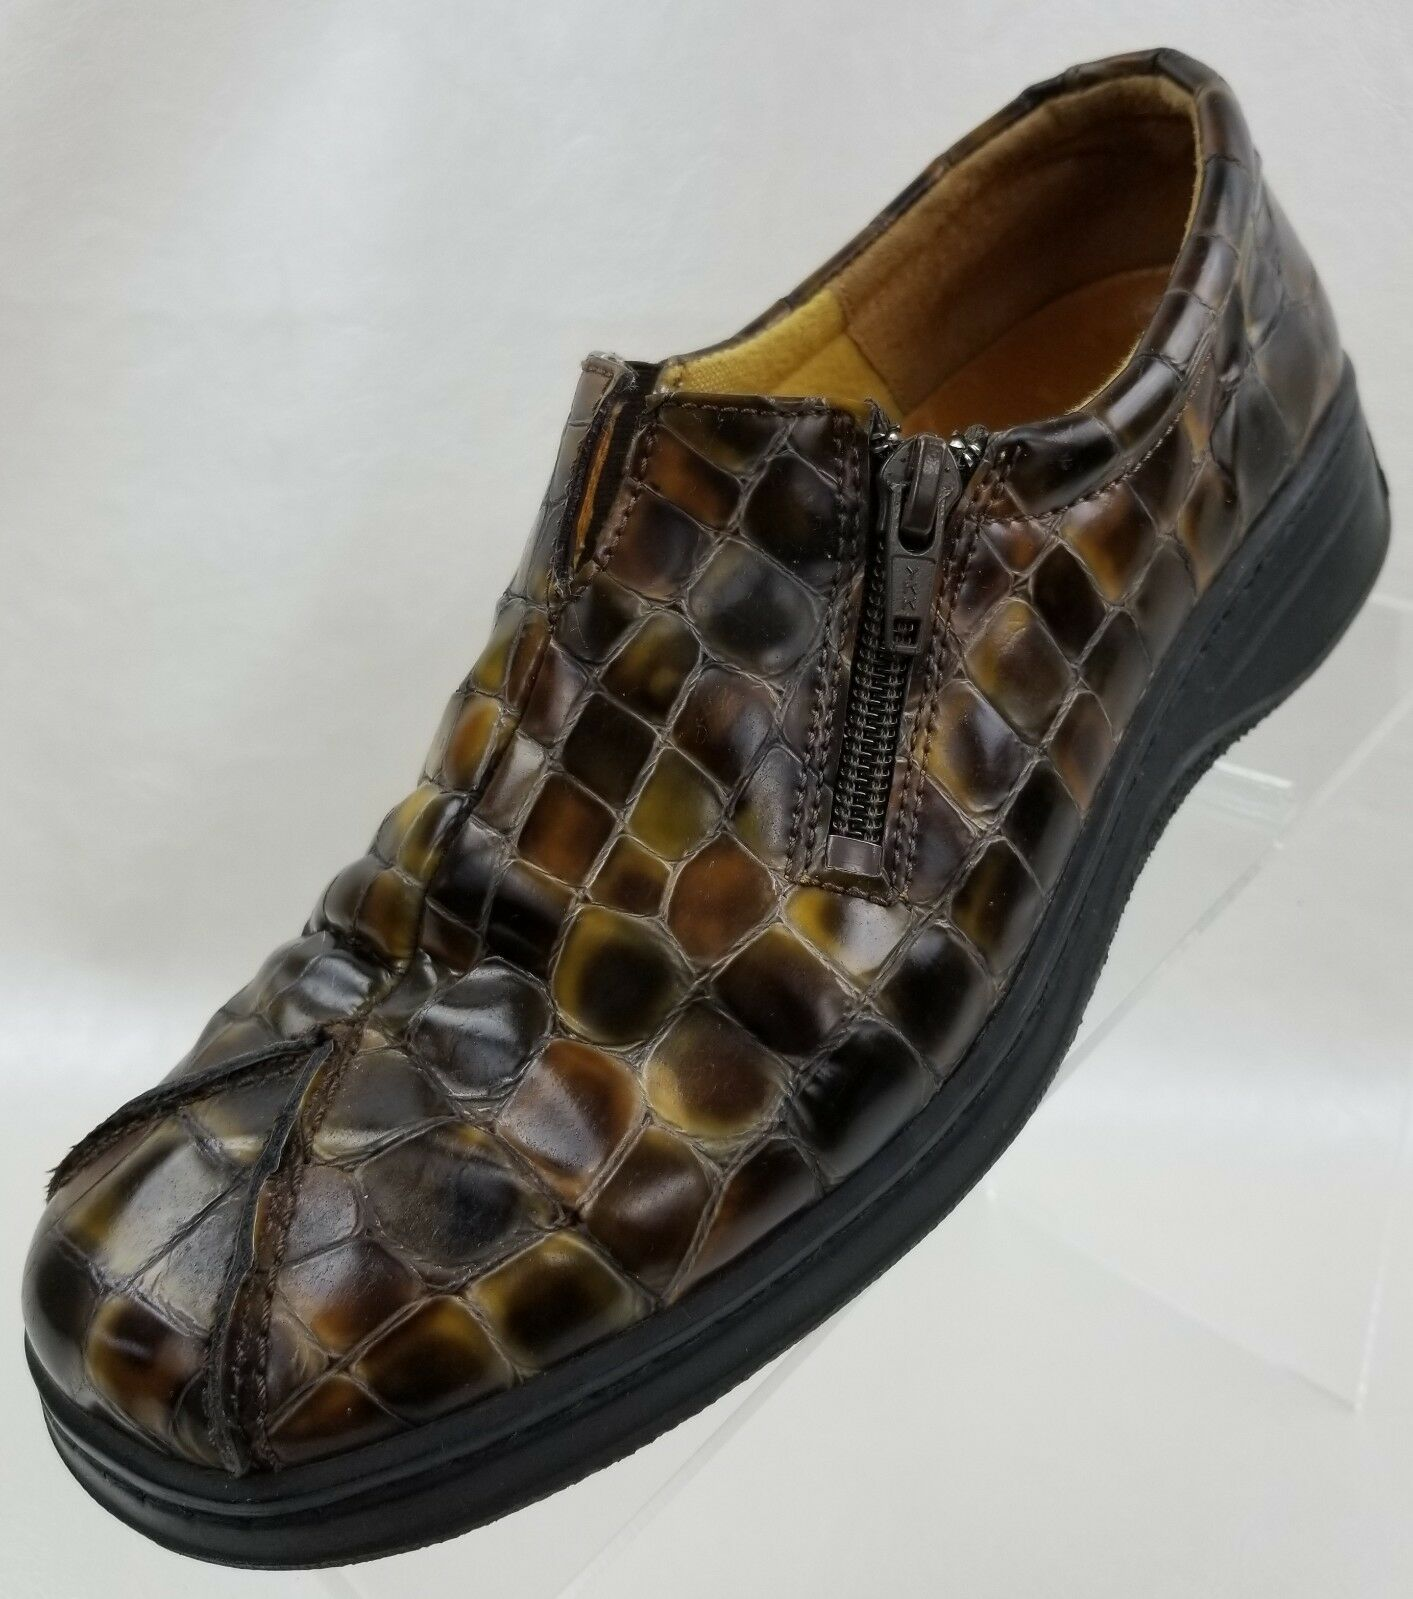 Helle Comfort By Romu Loafers Zip Womens Brown Croc Print shoes US 8.5